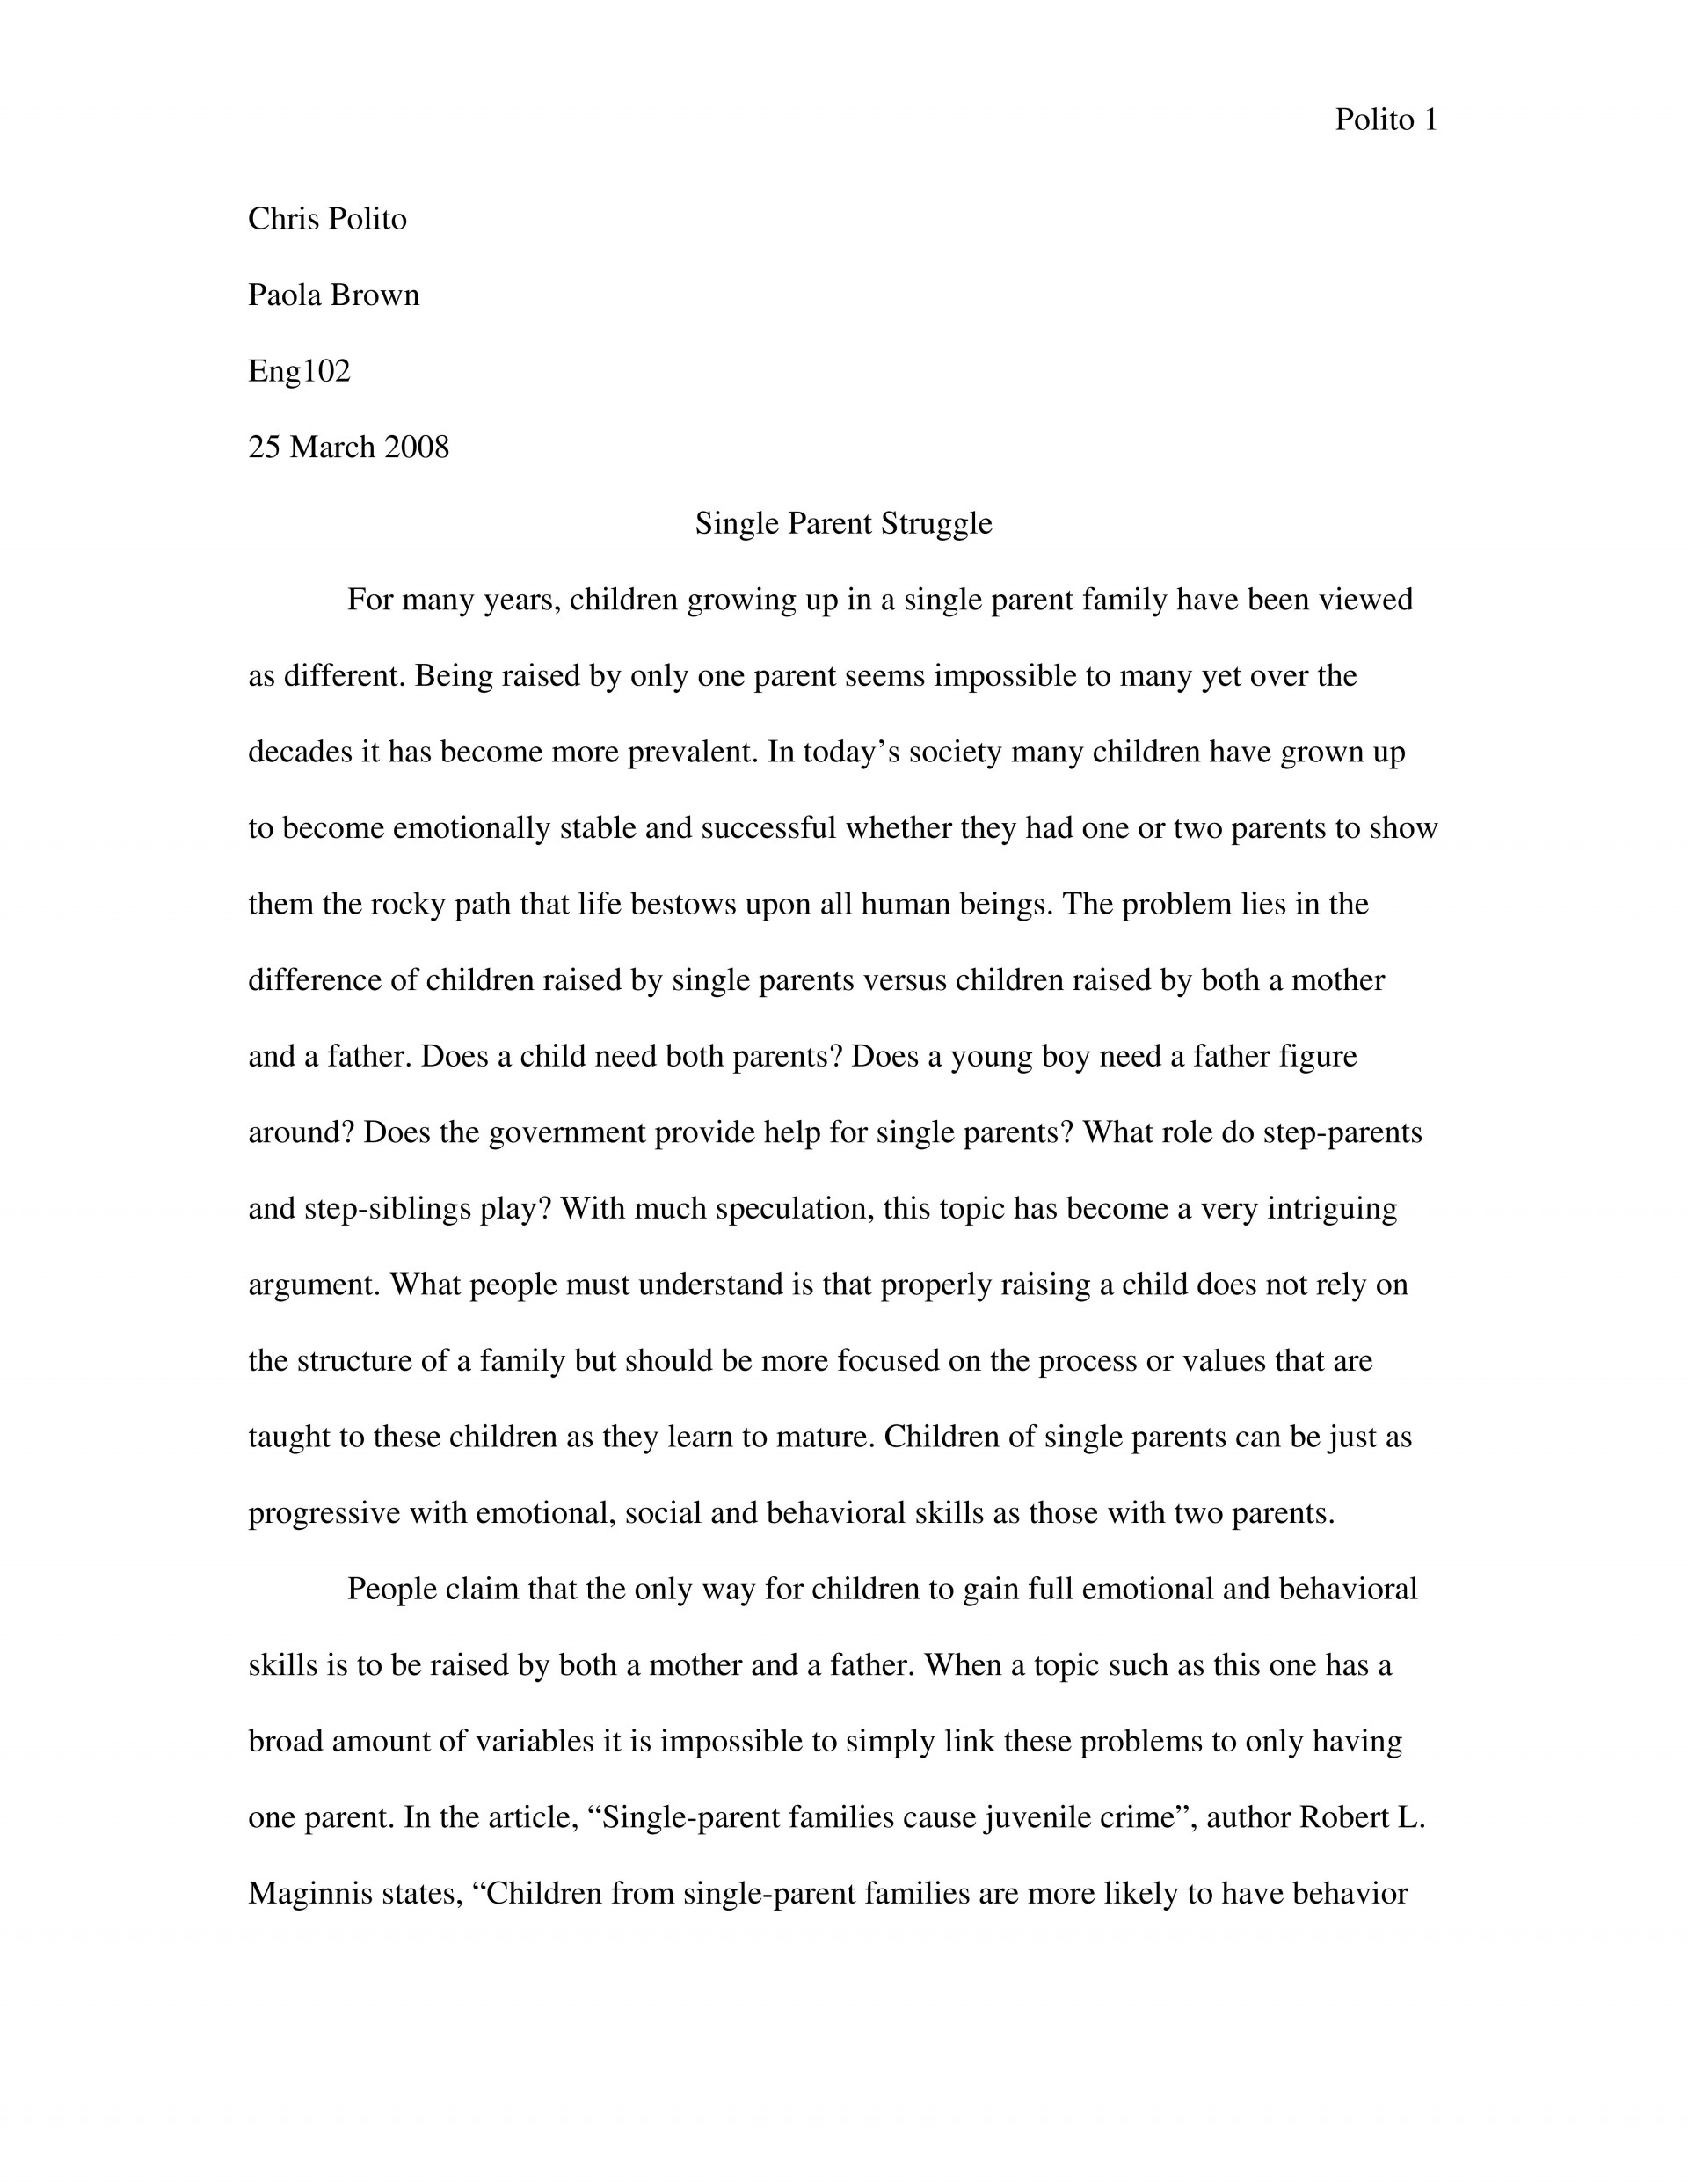 005 Example Of Expository Essay Sample 2 Marvelous Pdf Samples Essays For Middle School 1920